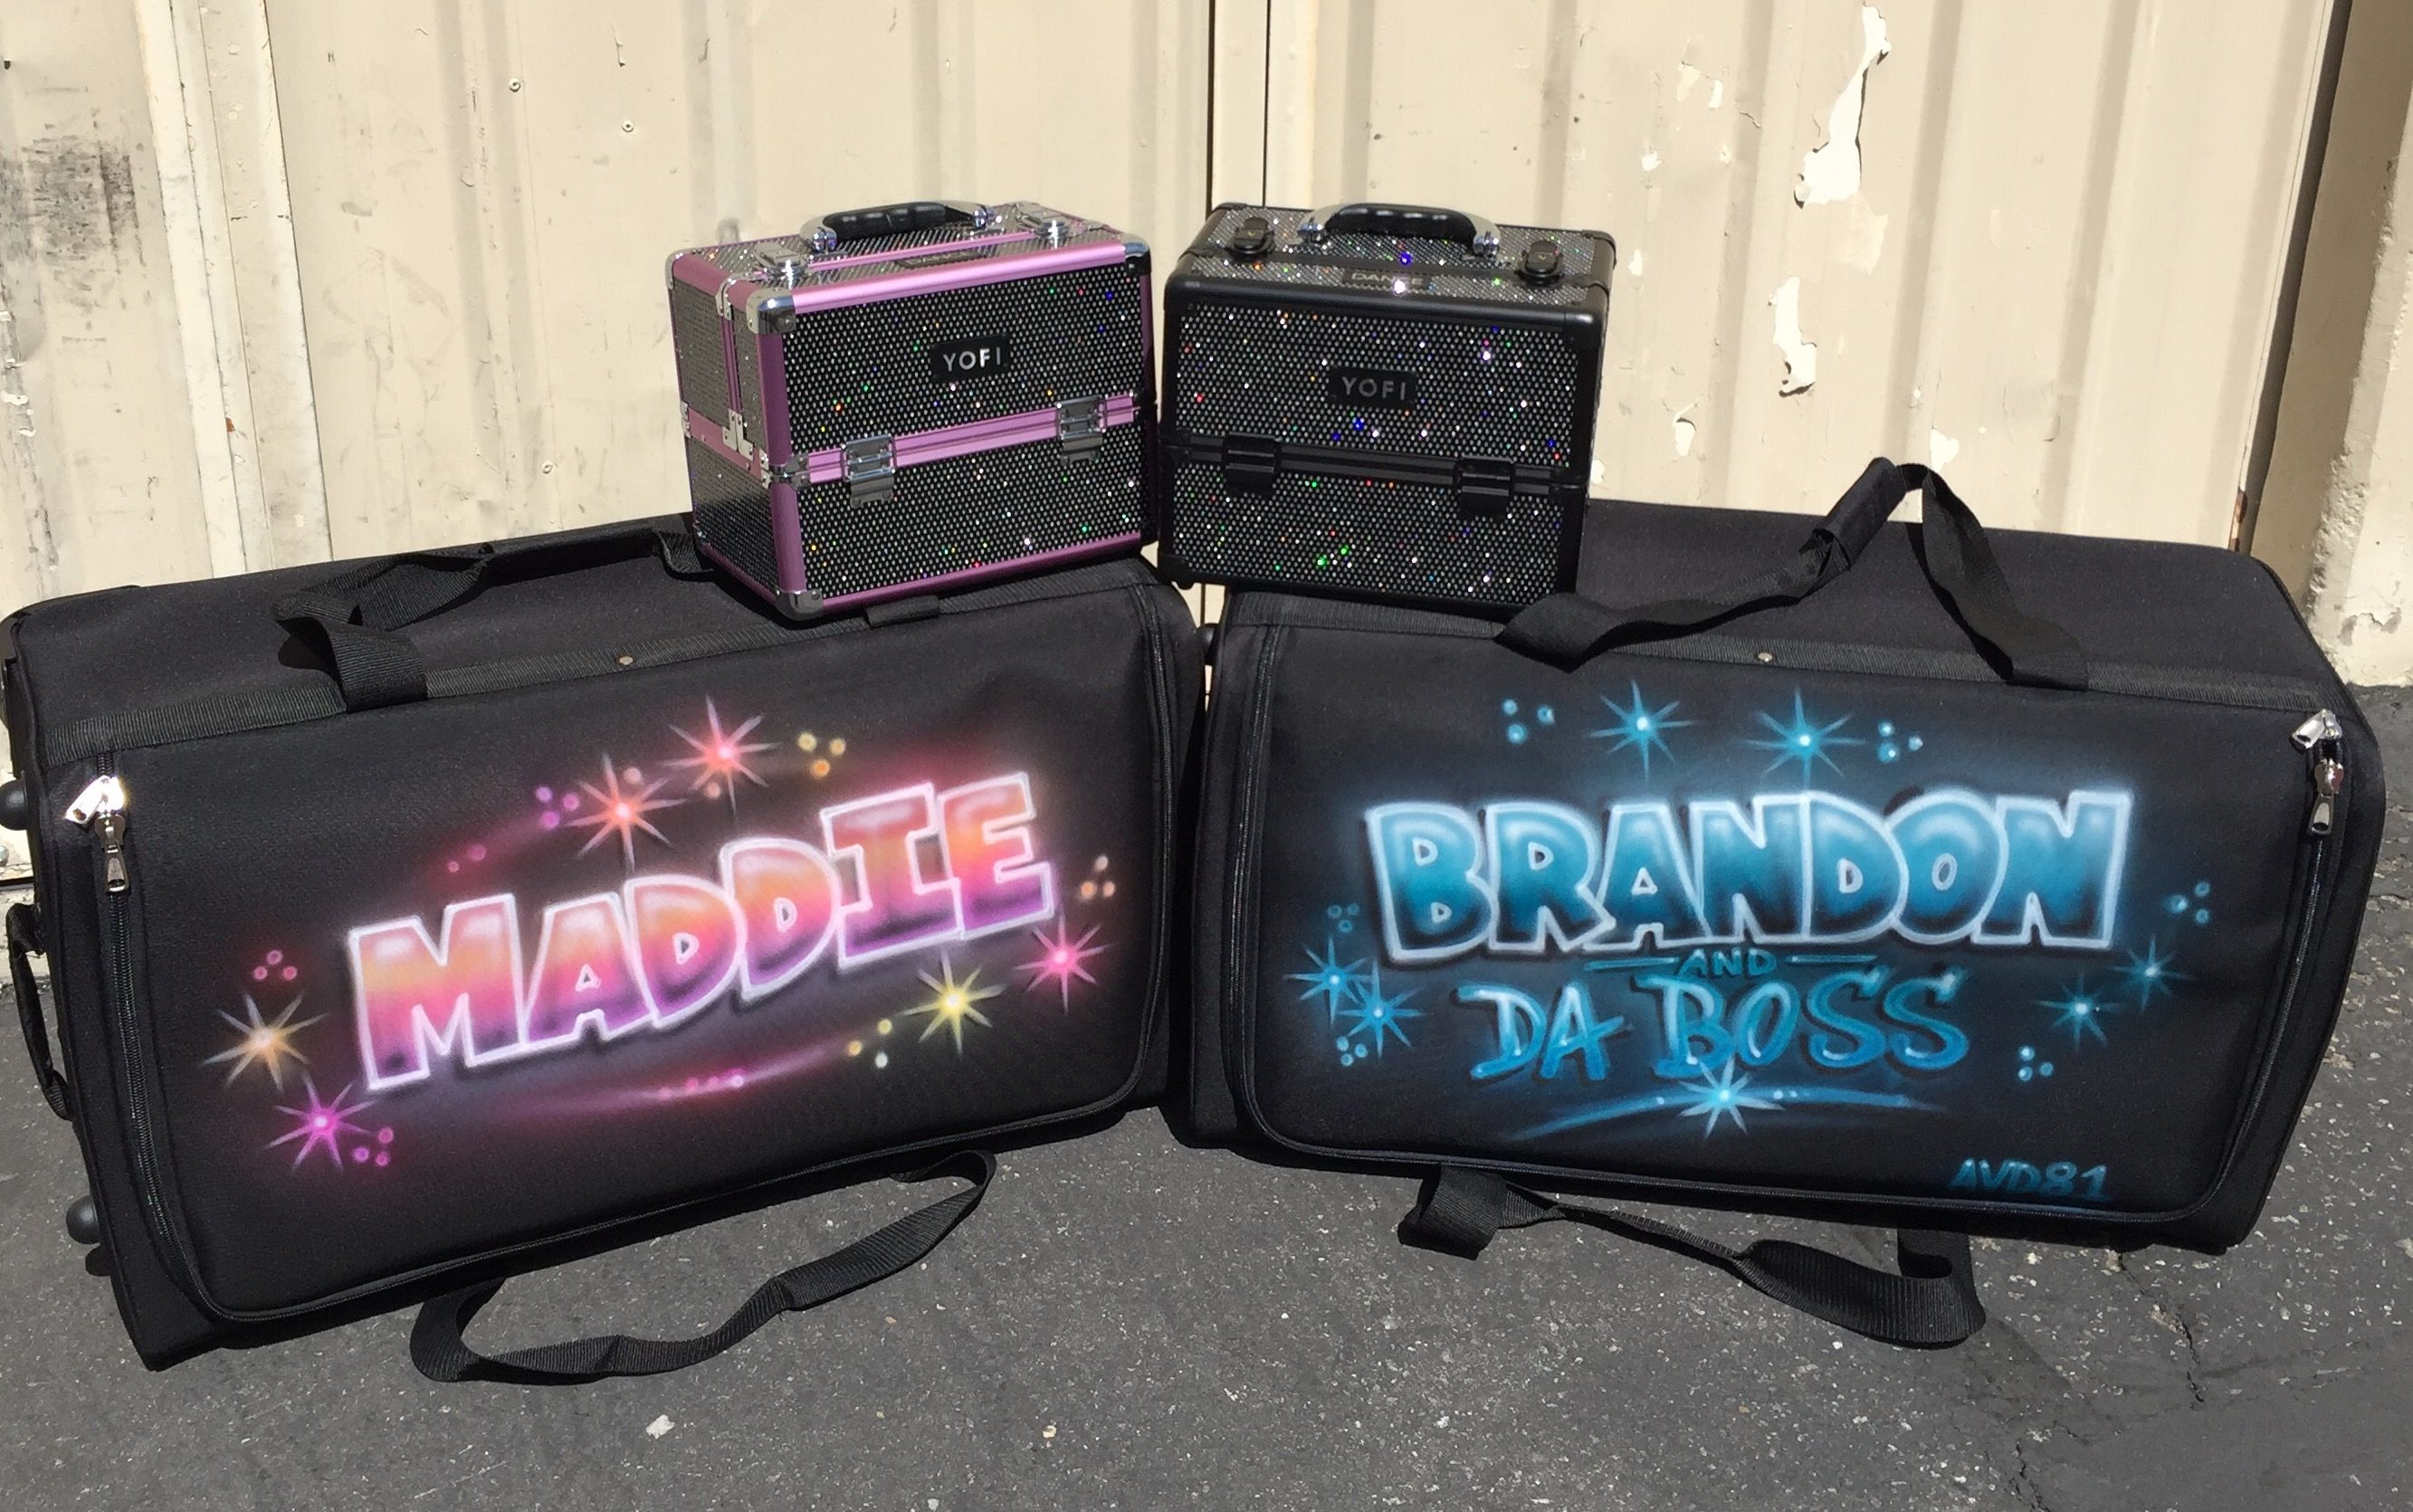 bags train and airbrush dance pin rack cases rolling yofi roll